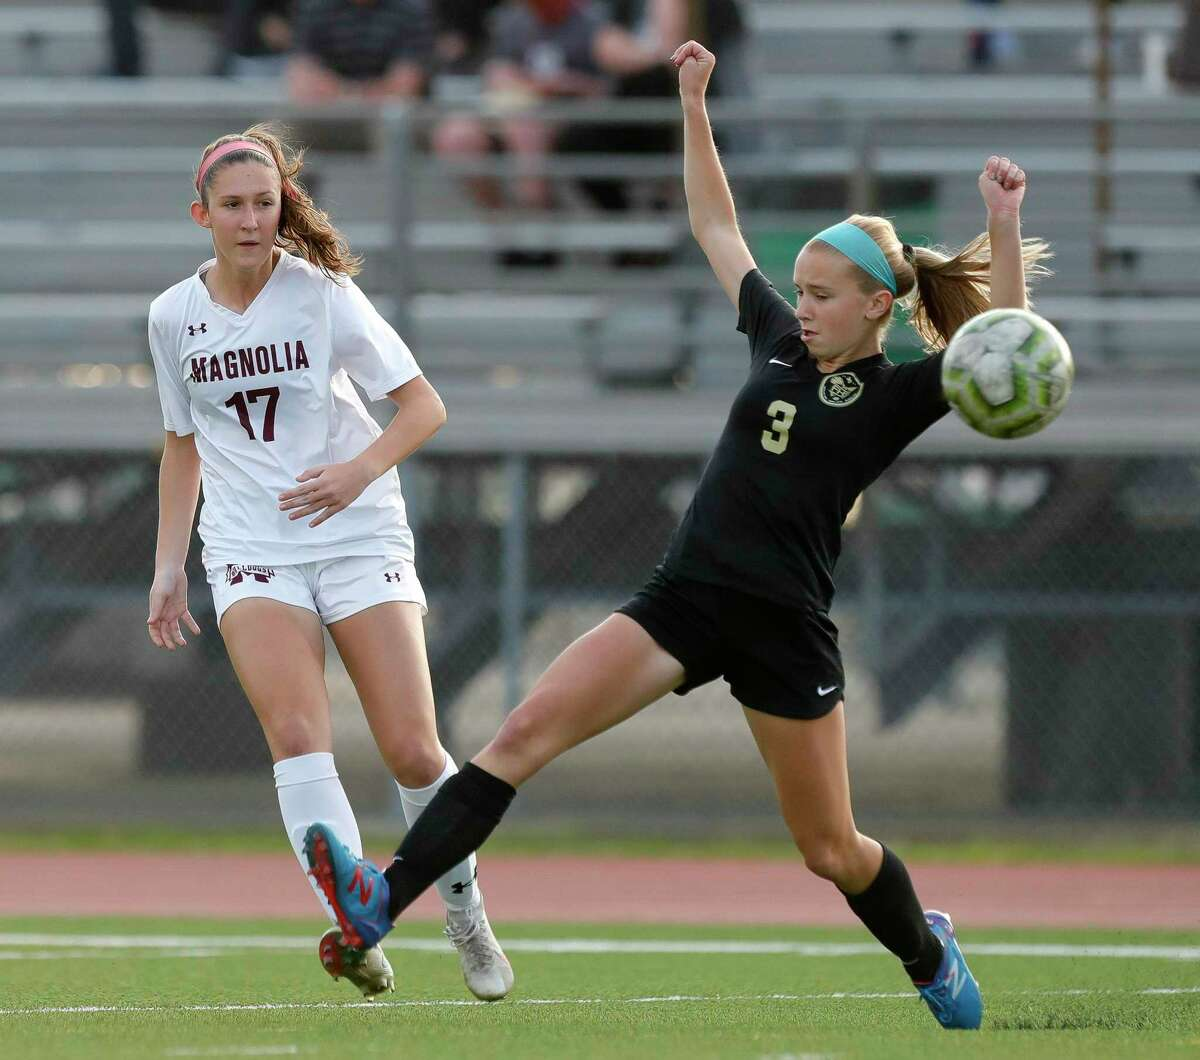 Magnolia's Sara Gianotti (17) makes a pass as Foster's Chloe Mills (3) gives pressure in the first period of a Region III-5A semifinal match at Cypress Falls High School, Tuesday, April 6, 2021, in Cypress.